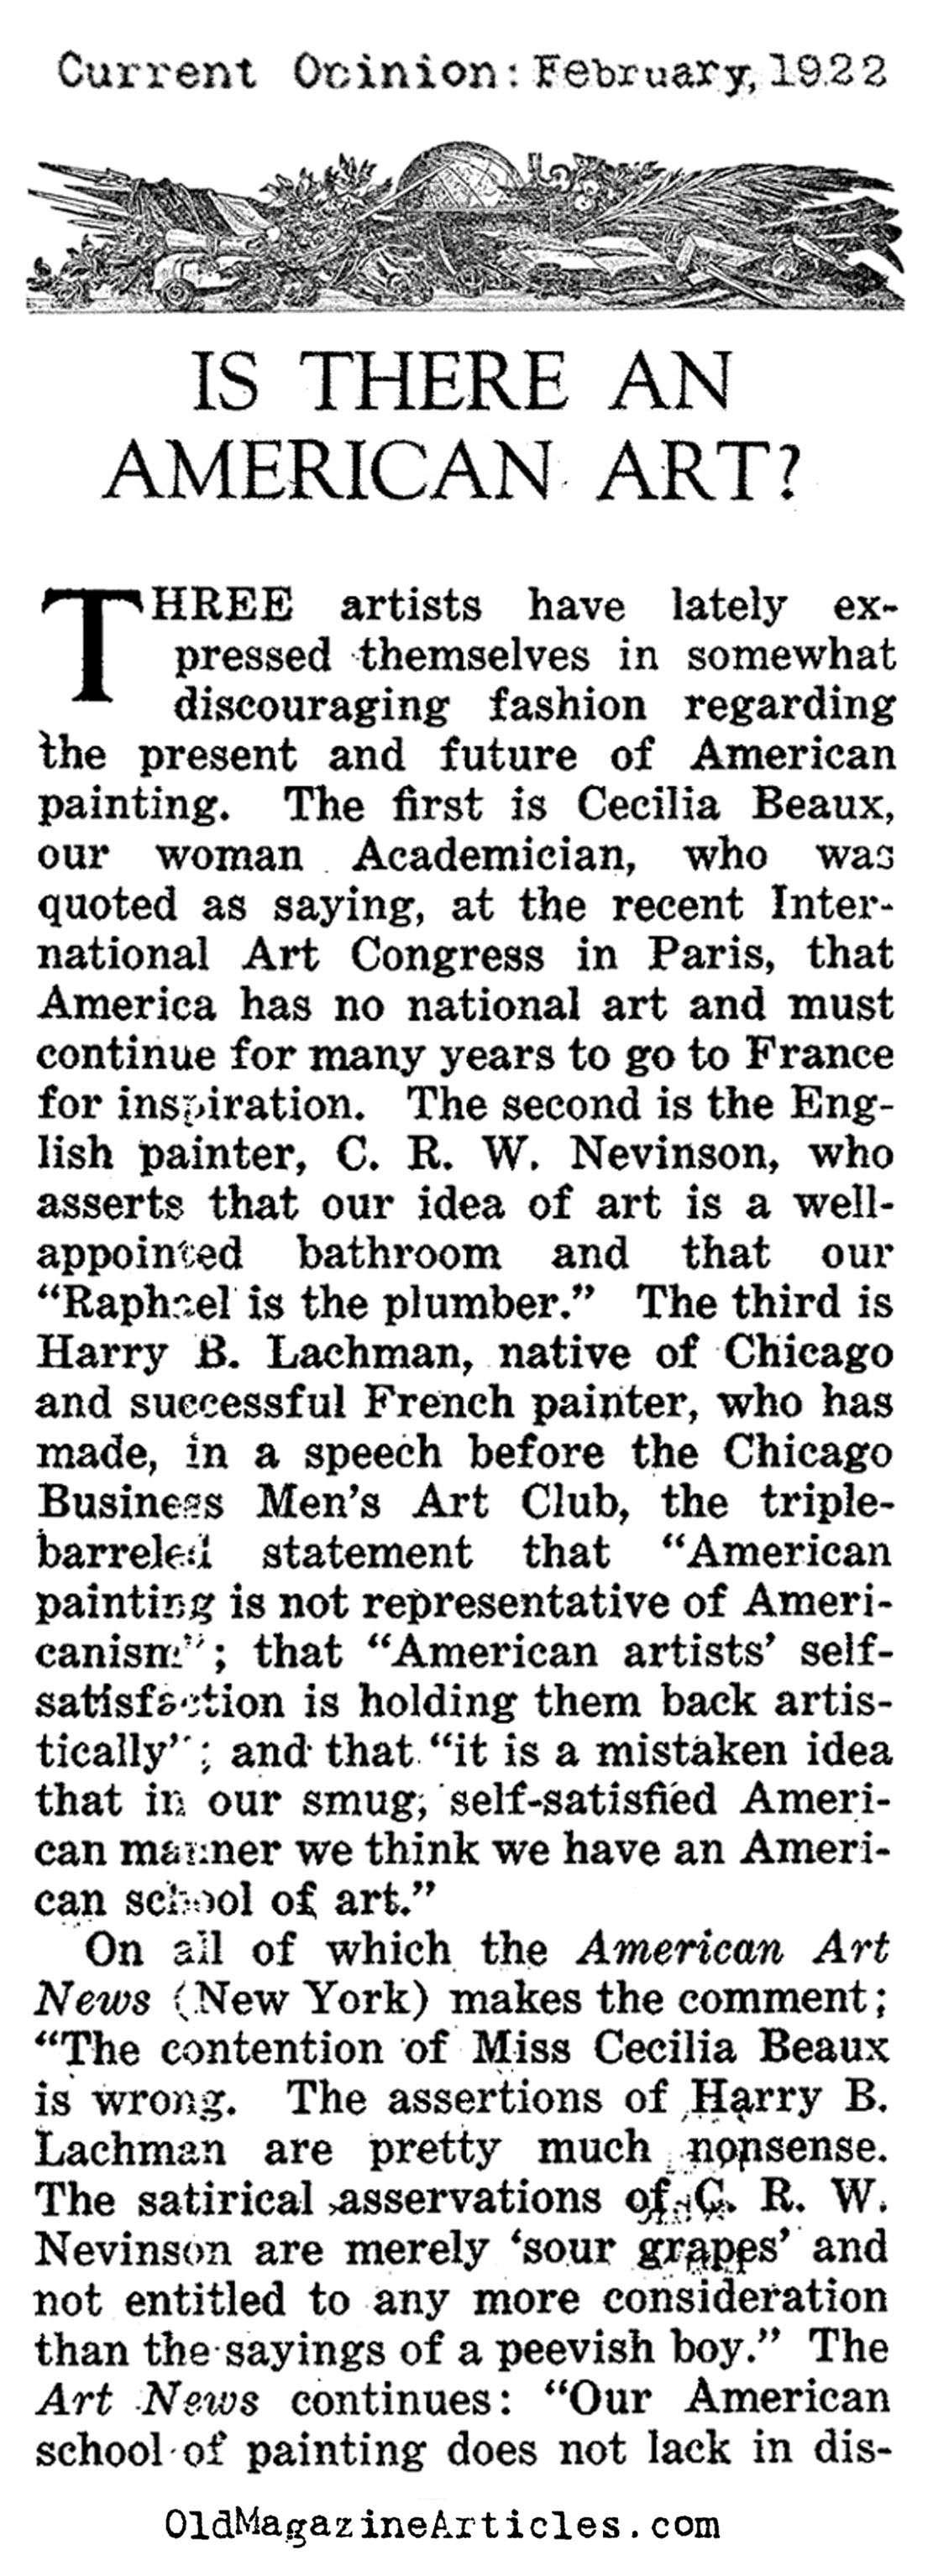 Is There an American Art? (Current Opinion, 1922)